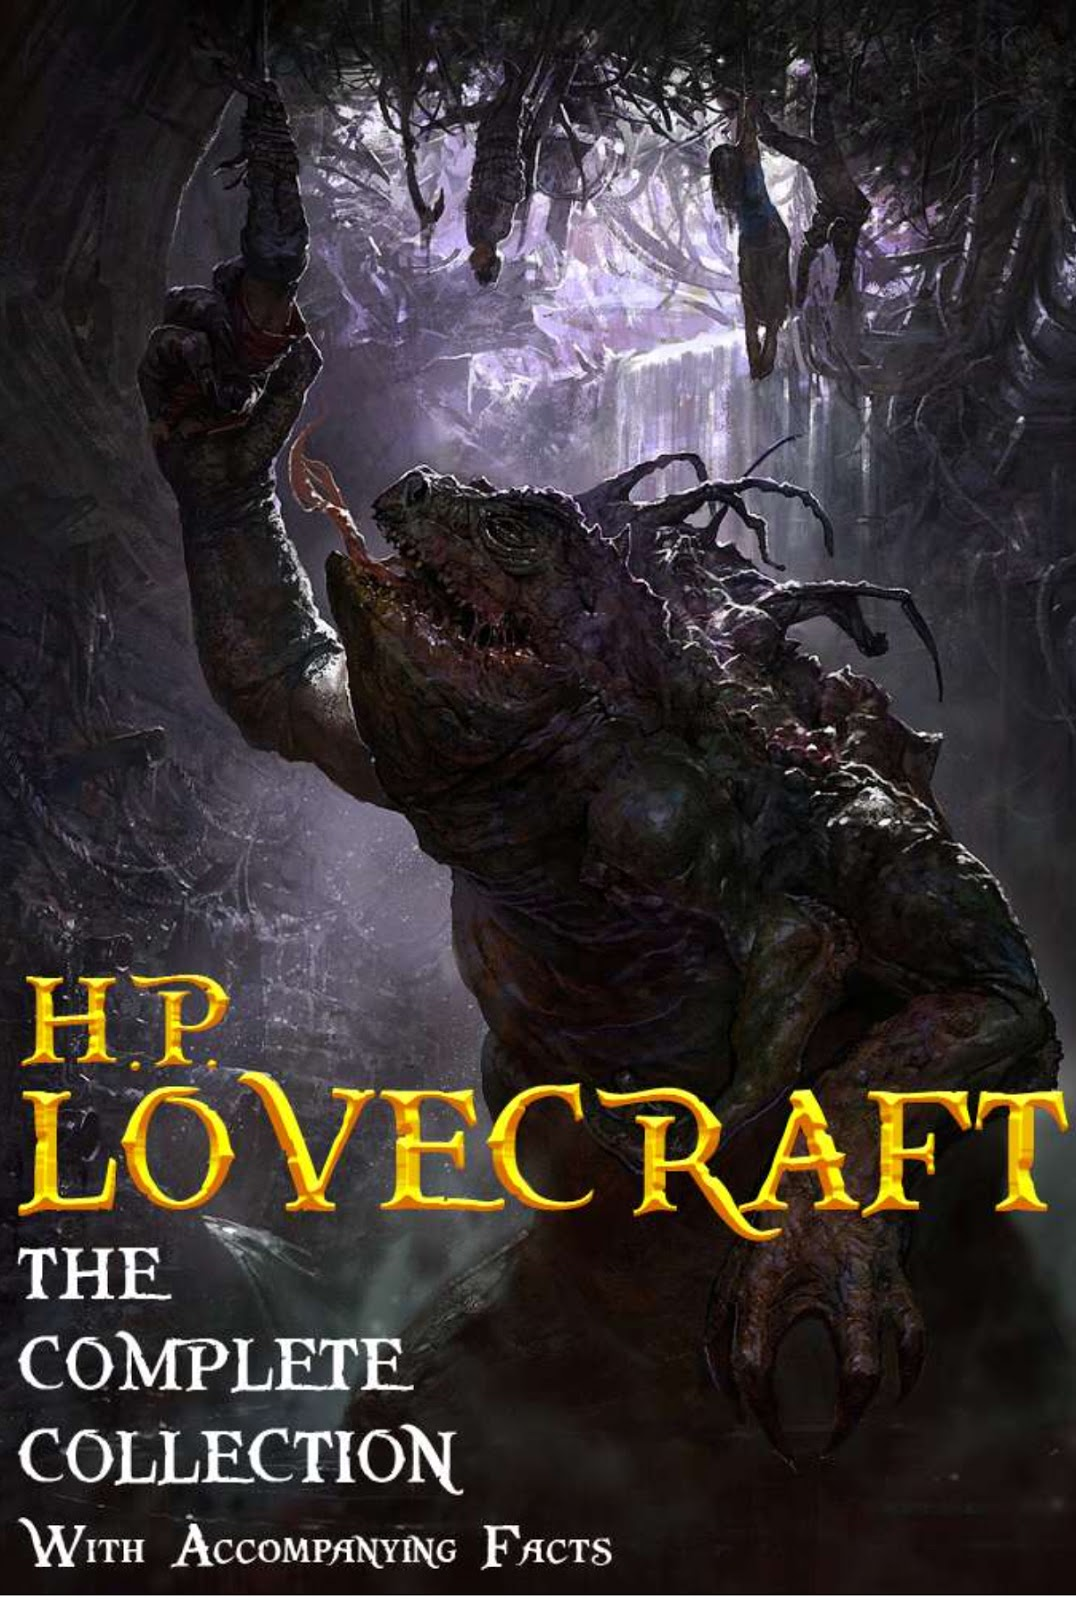 alchemist book reviews short story the alchemist by h p  short story 366 the alchemist by h p lovecraft antoine lives in a decrepit castle and is